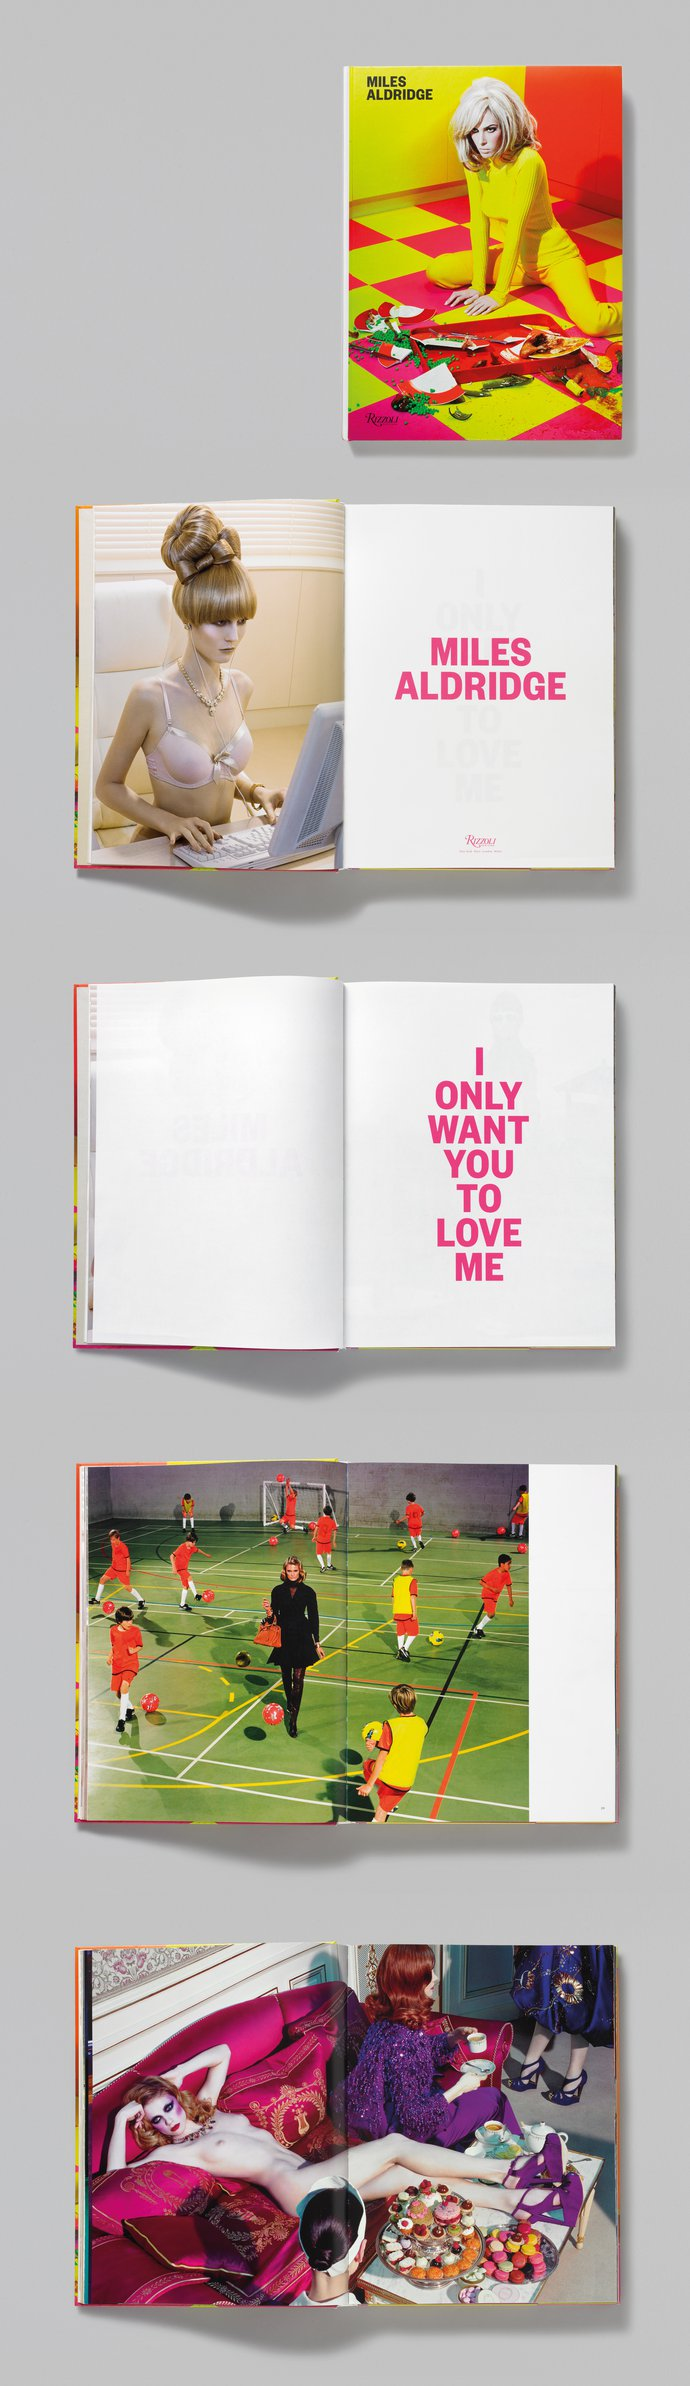 Rizzoli – Miles Aldridge: I Only Want You to Love Me, 2013 (Publication), image 2